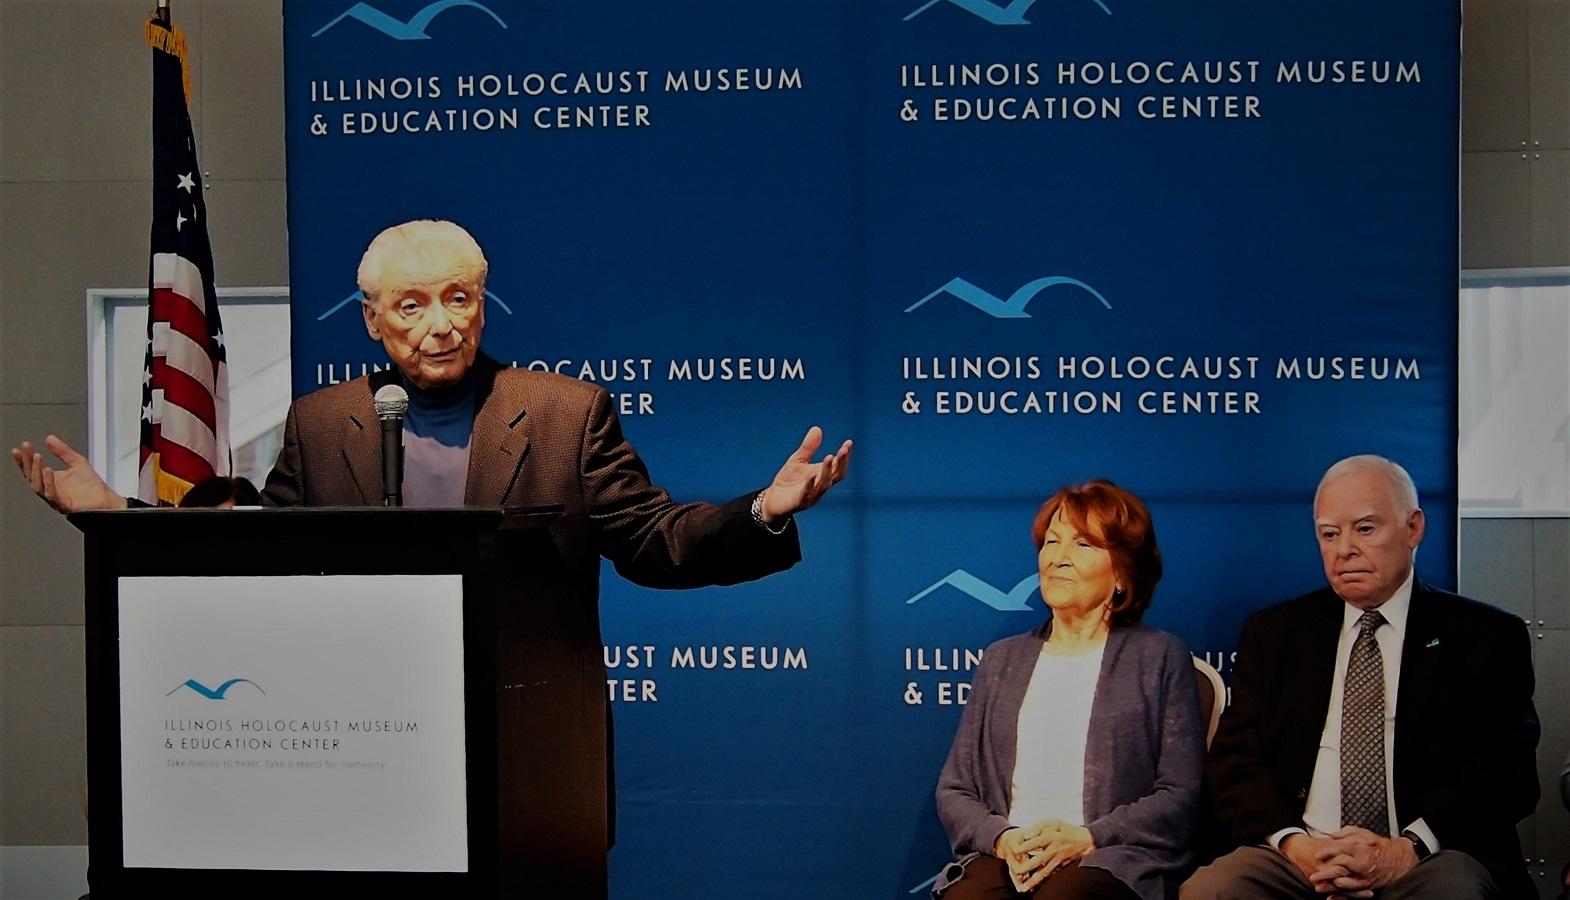 Holocaust survivors Aaron Elster, speaking, Fritzie Fritzshall and Ralph Rehbock at Illunois Holocaust Museum & Education Center. Feb 2. 2017. Source: Jonah Meadows / Patch.com / Donald Trump Refugee Ban Condemned By Chicago-Area Holocaust Survivors